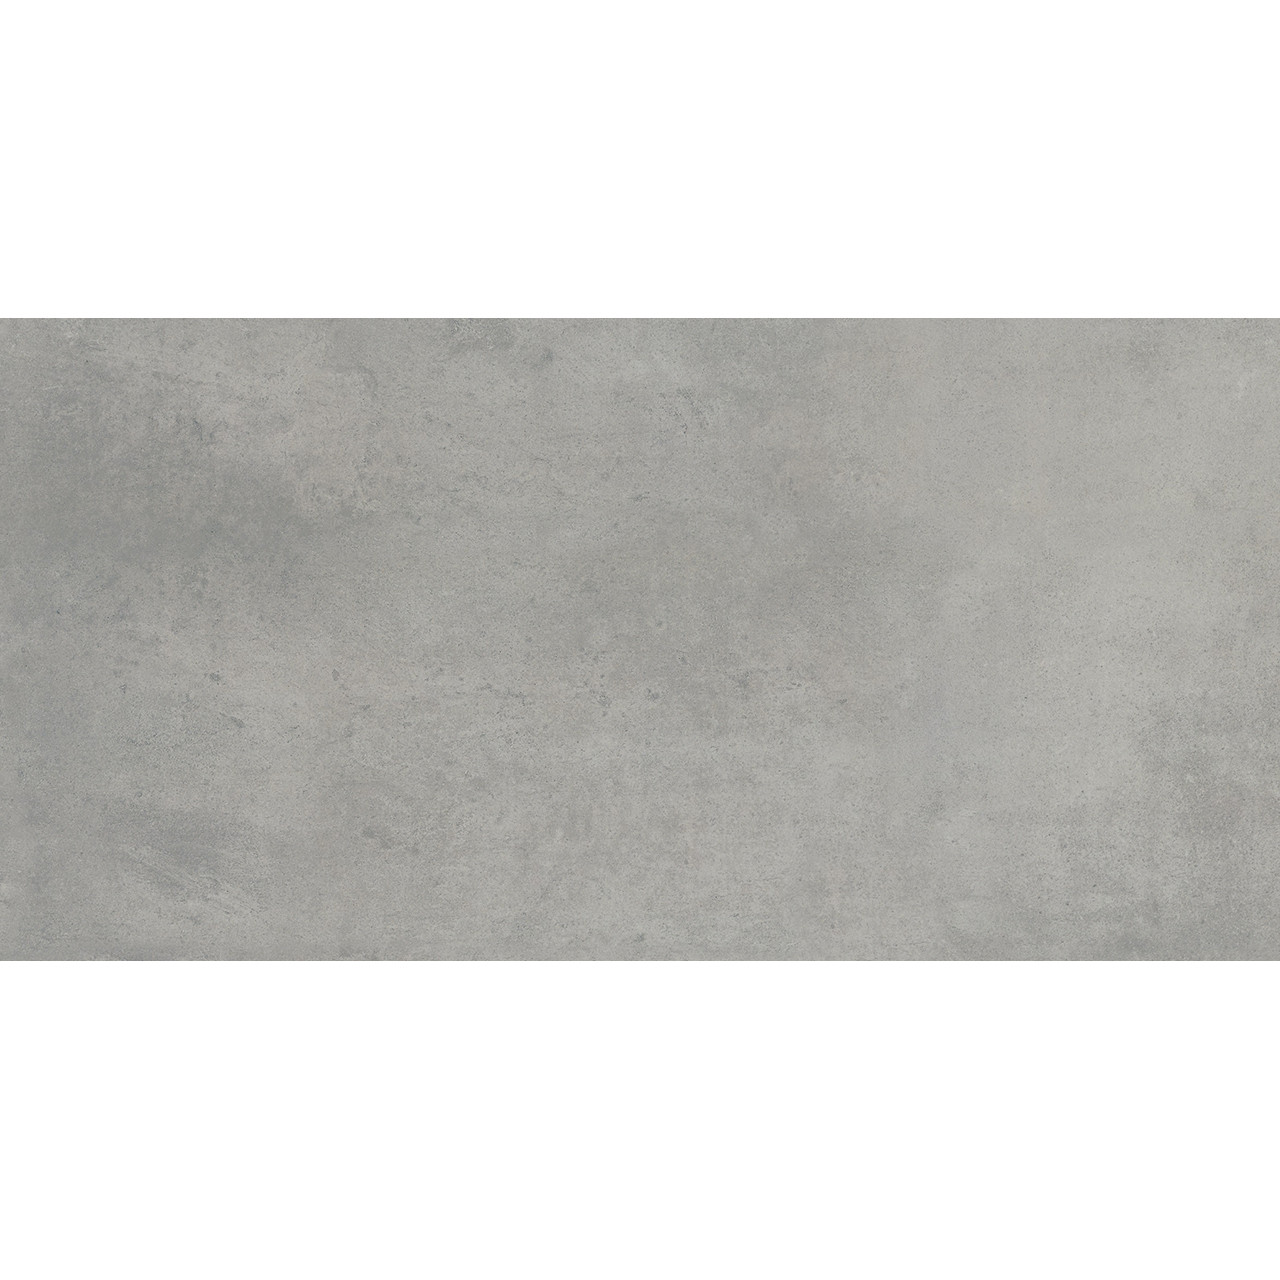 Maxima Medium Grey 31cm x 62cm Porcelain Tile